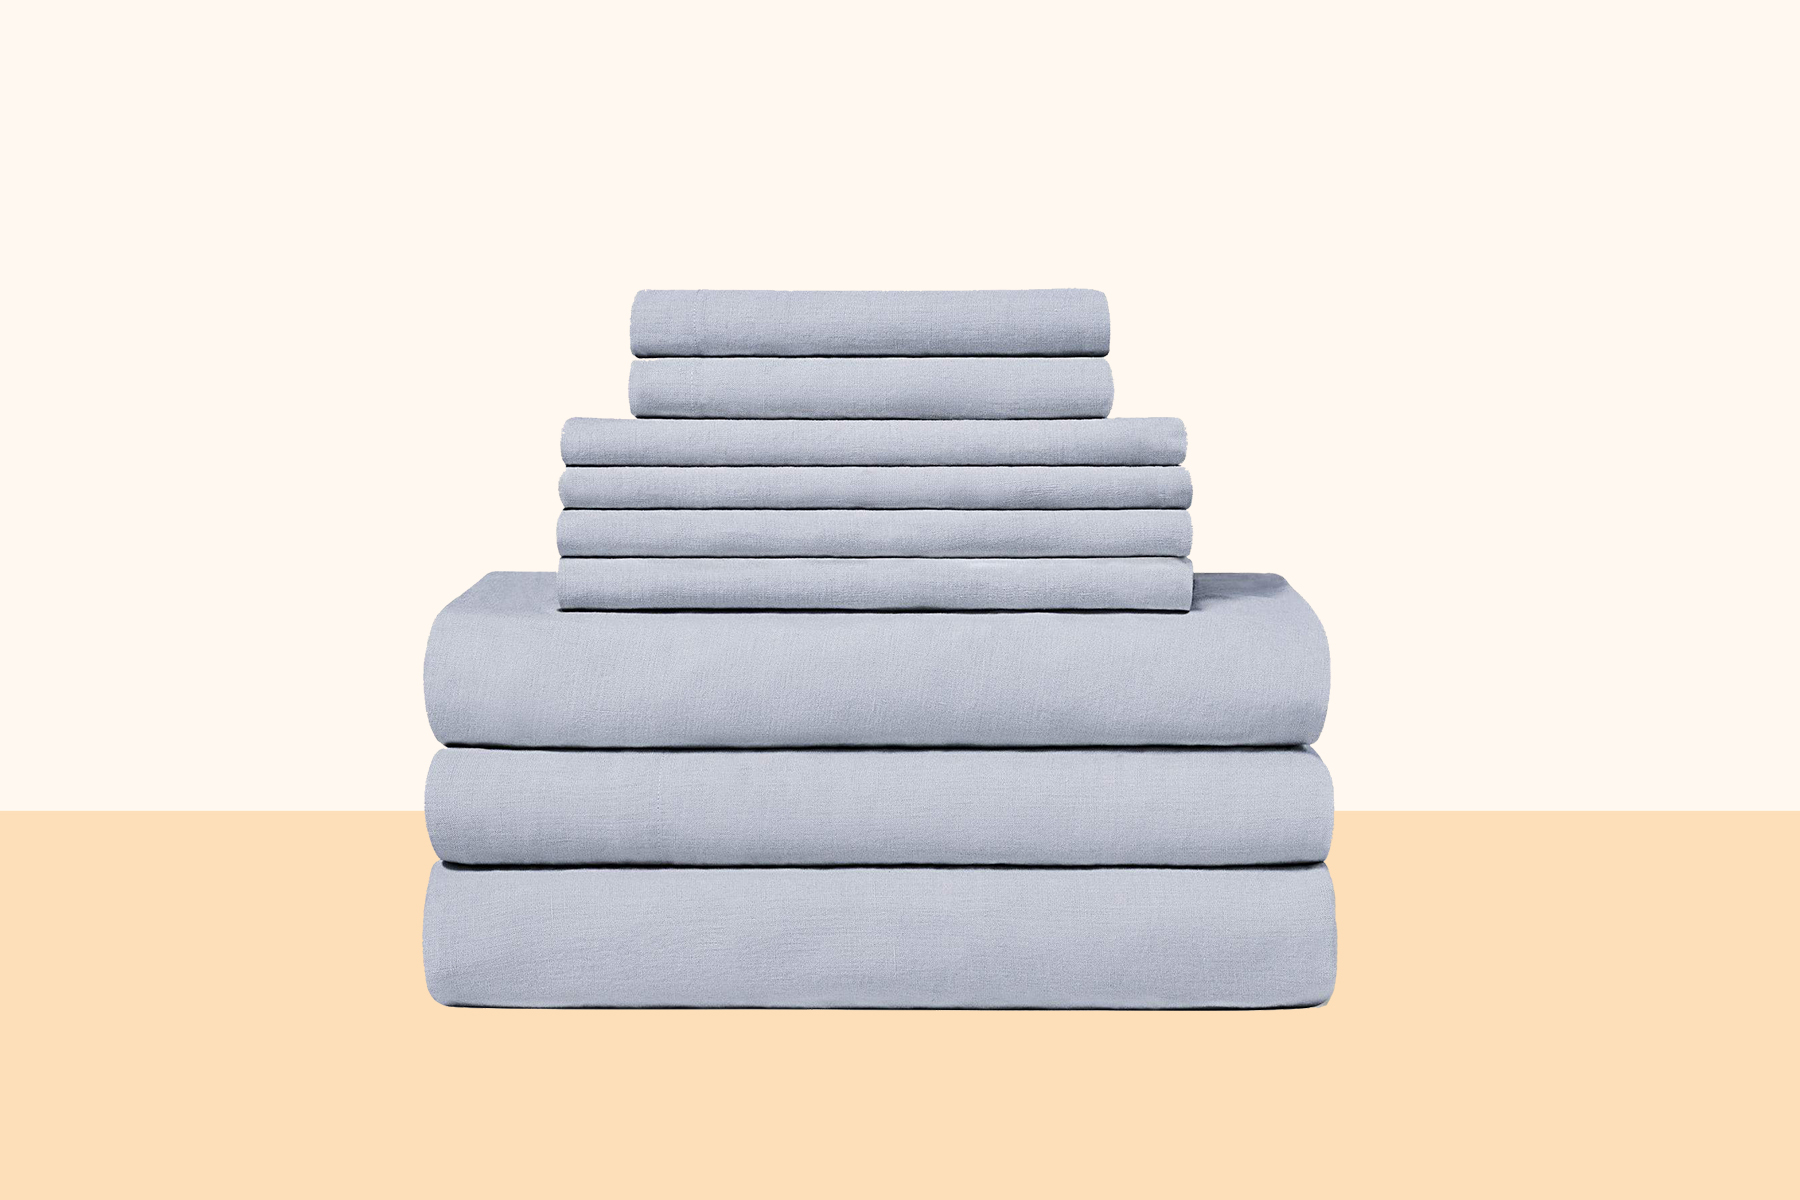 Snowe Home Just Launched A Breathable Linen Bedding Line And It S So Chic